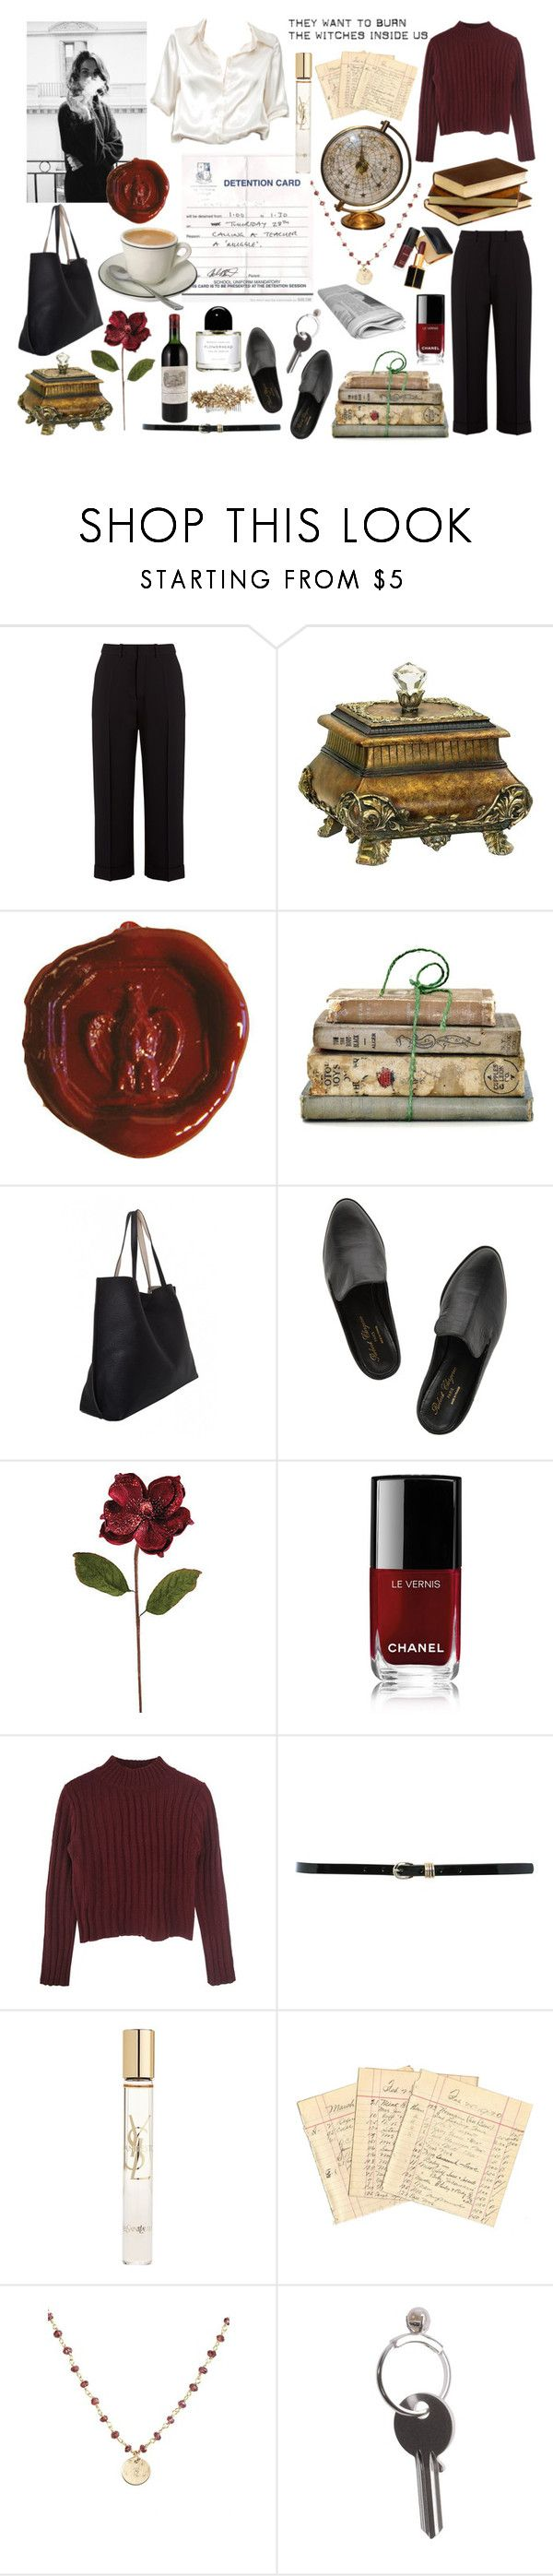 """""""have a biscuit, potter ~ minerva mcgonnagal"""" by fizz-fics ❤ liked on Polyvore featuring Chloé, Sterling, Shabby Chic, Robert Clergerie, Frontgate, Chanel, M&Co, Yves Saint Laurent, Hermès and Nashelle"""